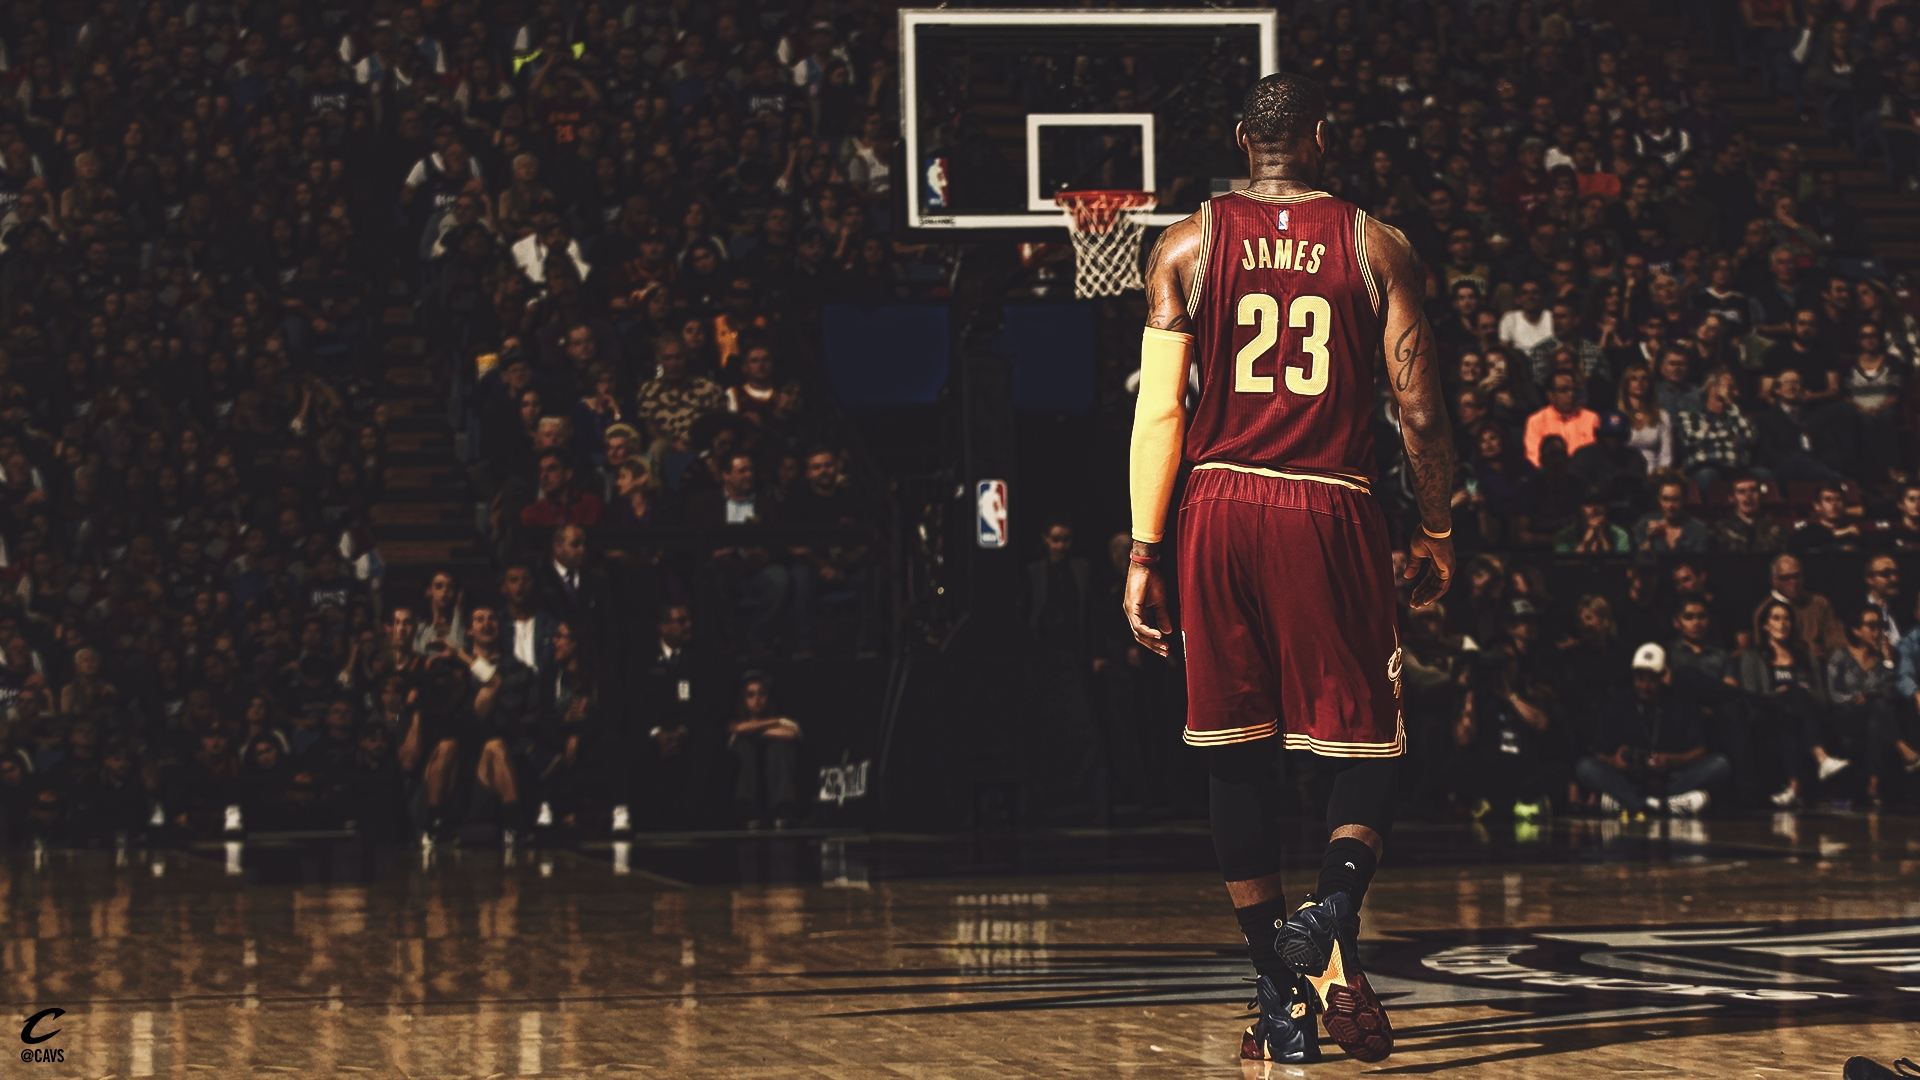 sports lebron james hd wallpapers (desktop, phone, tablet) - awesome